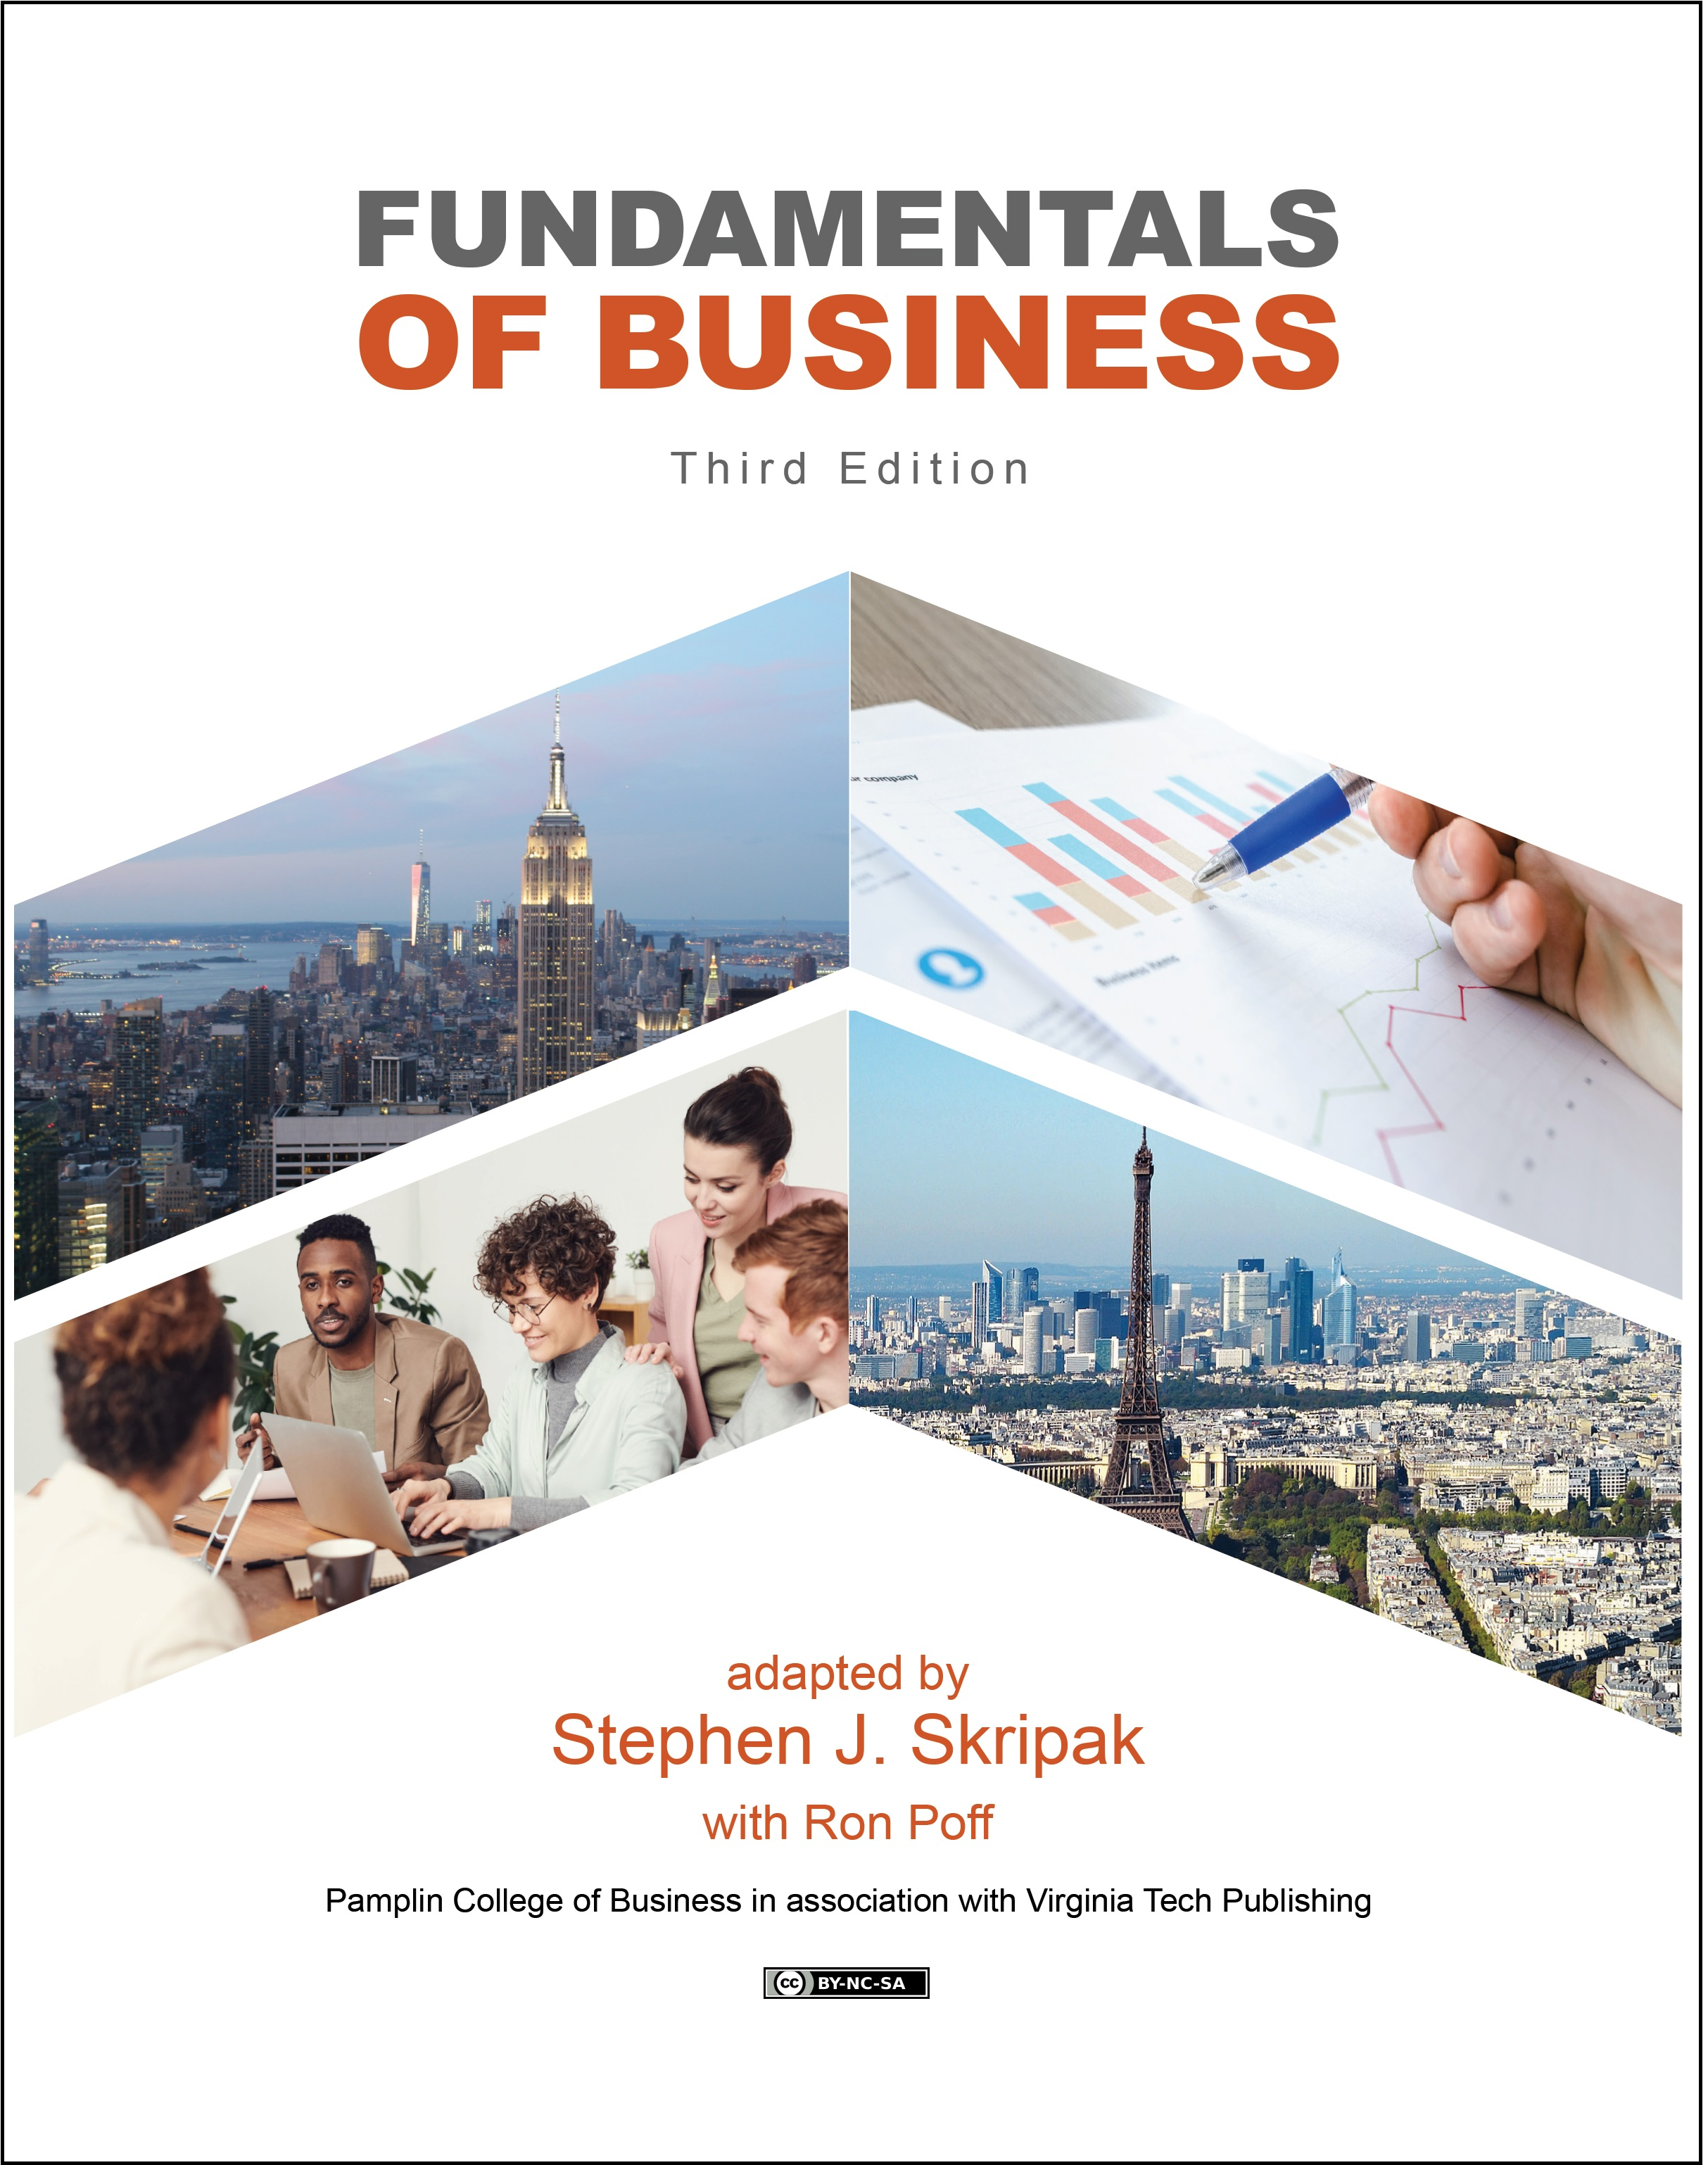 Fundamentals of Business third edition adapted by Stephen Skripak with Ron Poff. Published by Pamplin College of Business in association with Virginia Tech Publishing. Licensed with a Creative Commons NonCommercial ShareAlike 4.0 license.